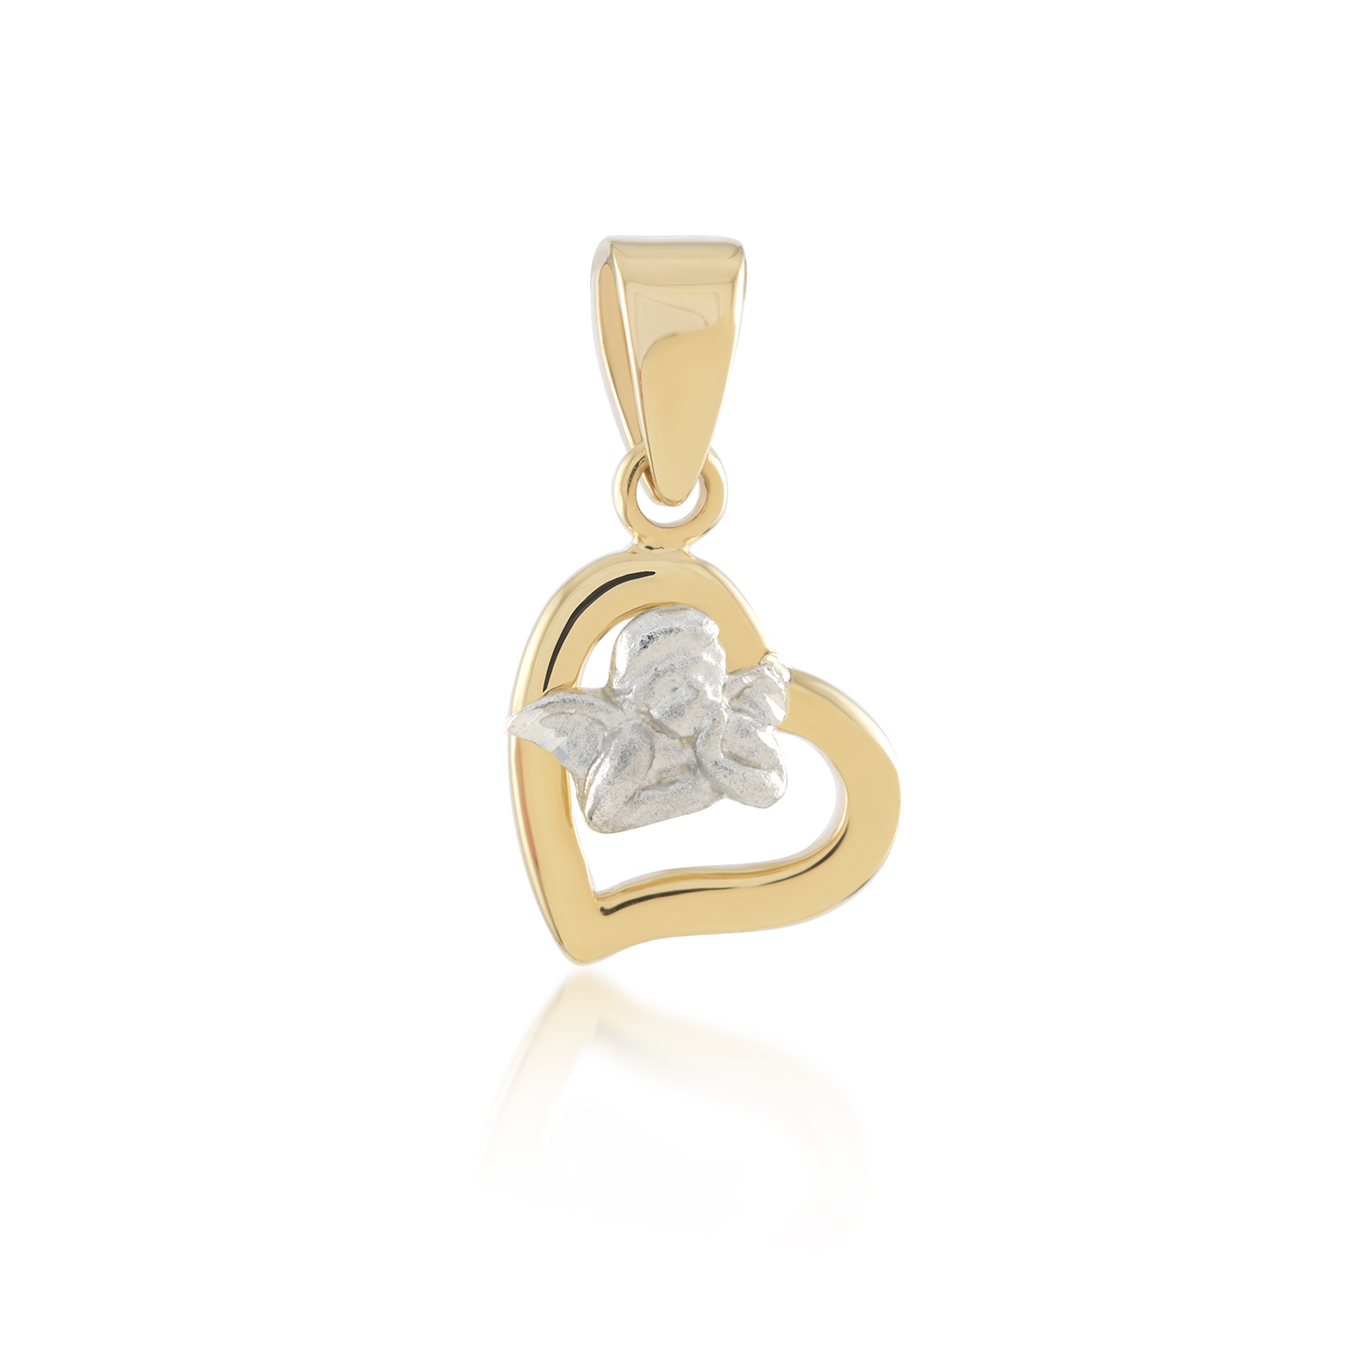 Heart with angel pendant for children - 10K 2-tone Gold (yellow and white)